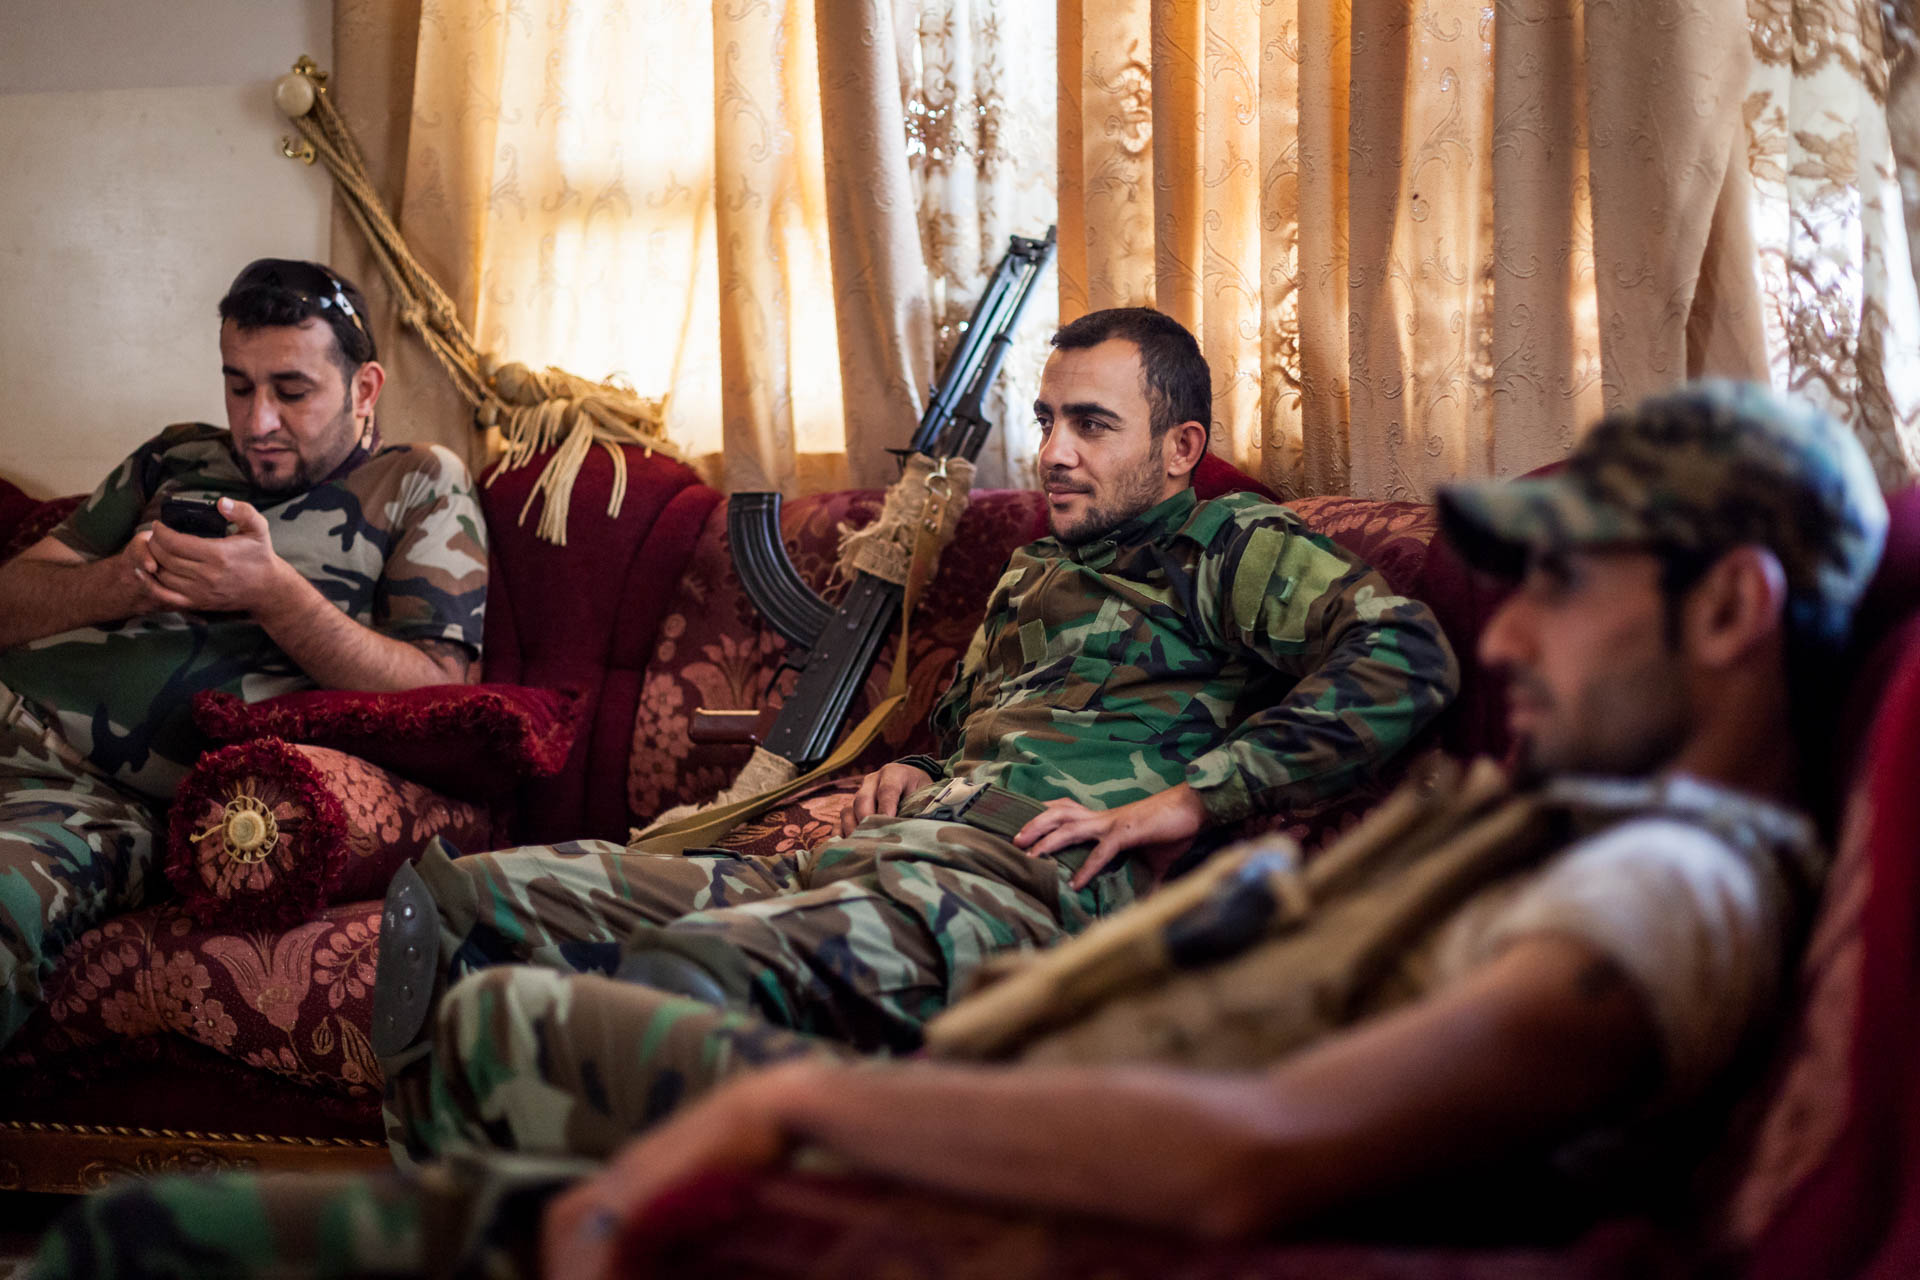 Three fighters of the Dwekh Nawsha in the living room of their headquarter in Bakufa. For most of the time, the Islamic State does not attact, but sometimes they shoot mortars or use the morning fog to attempt an advance.